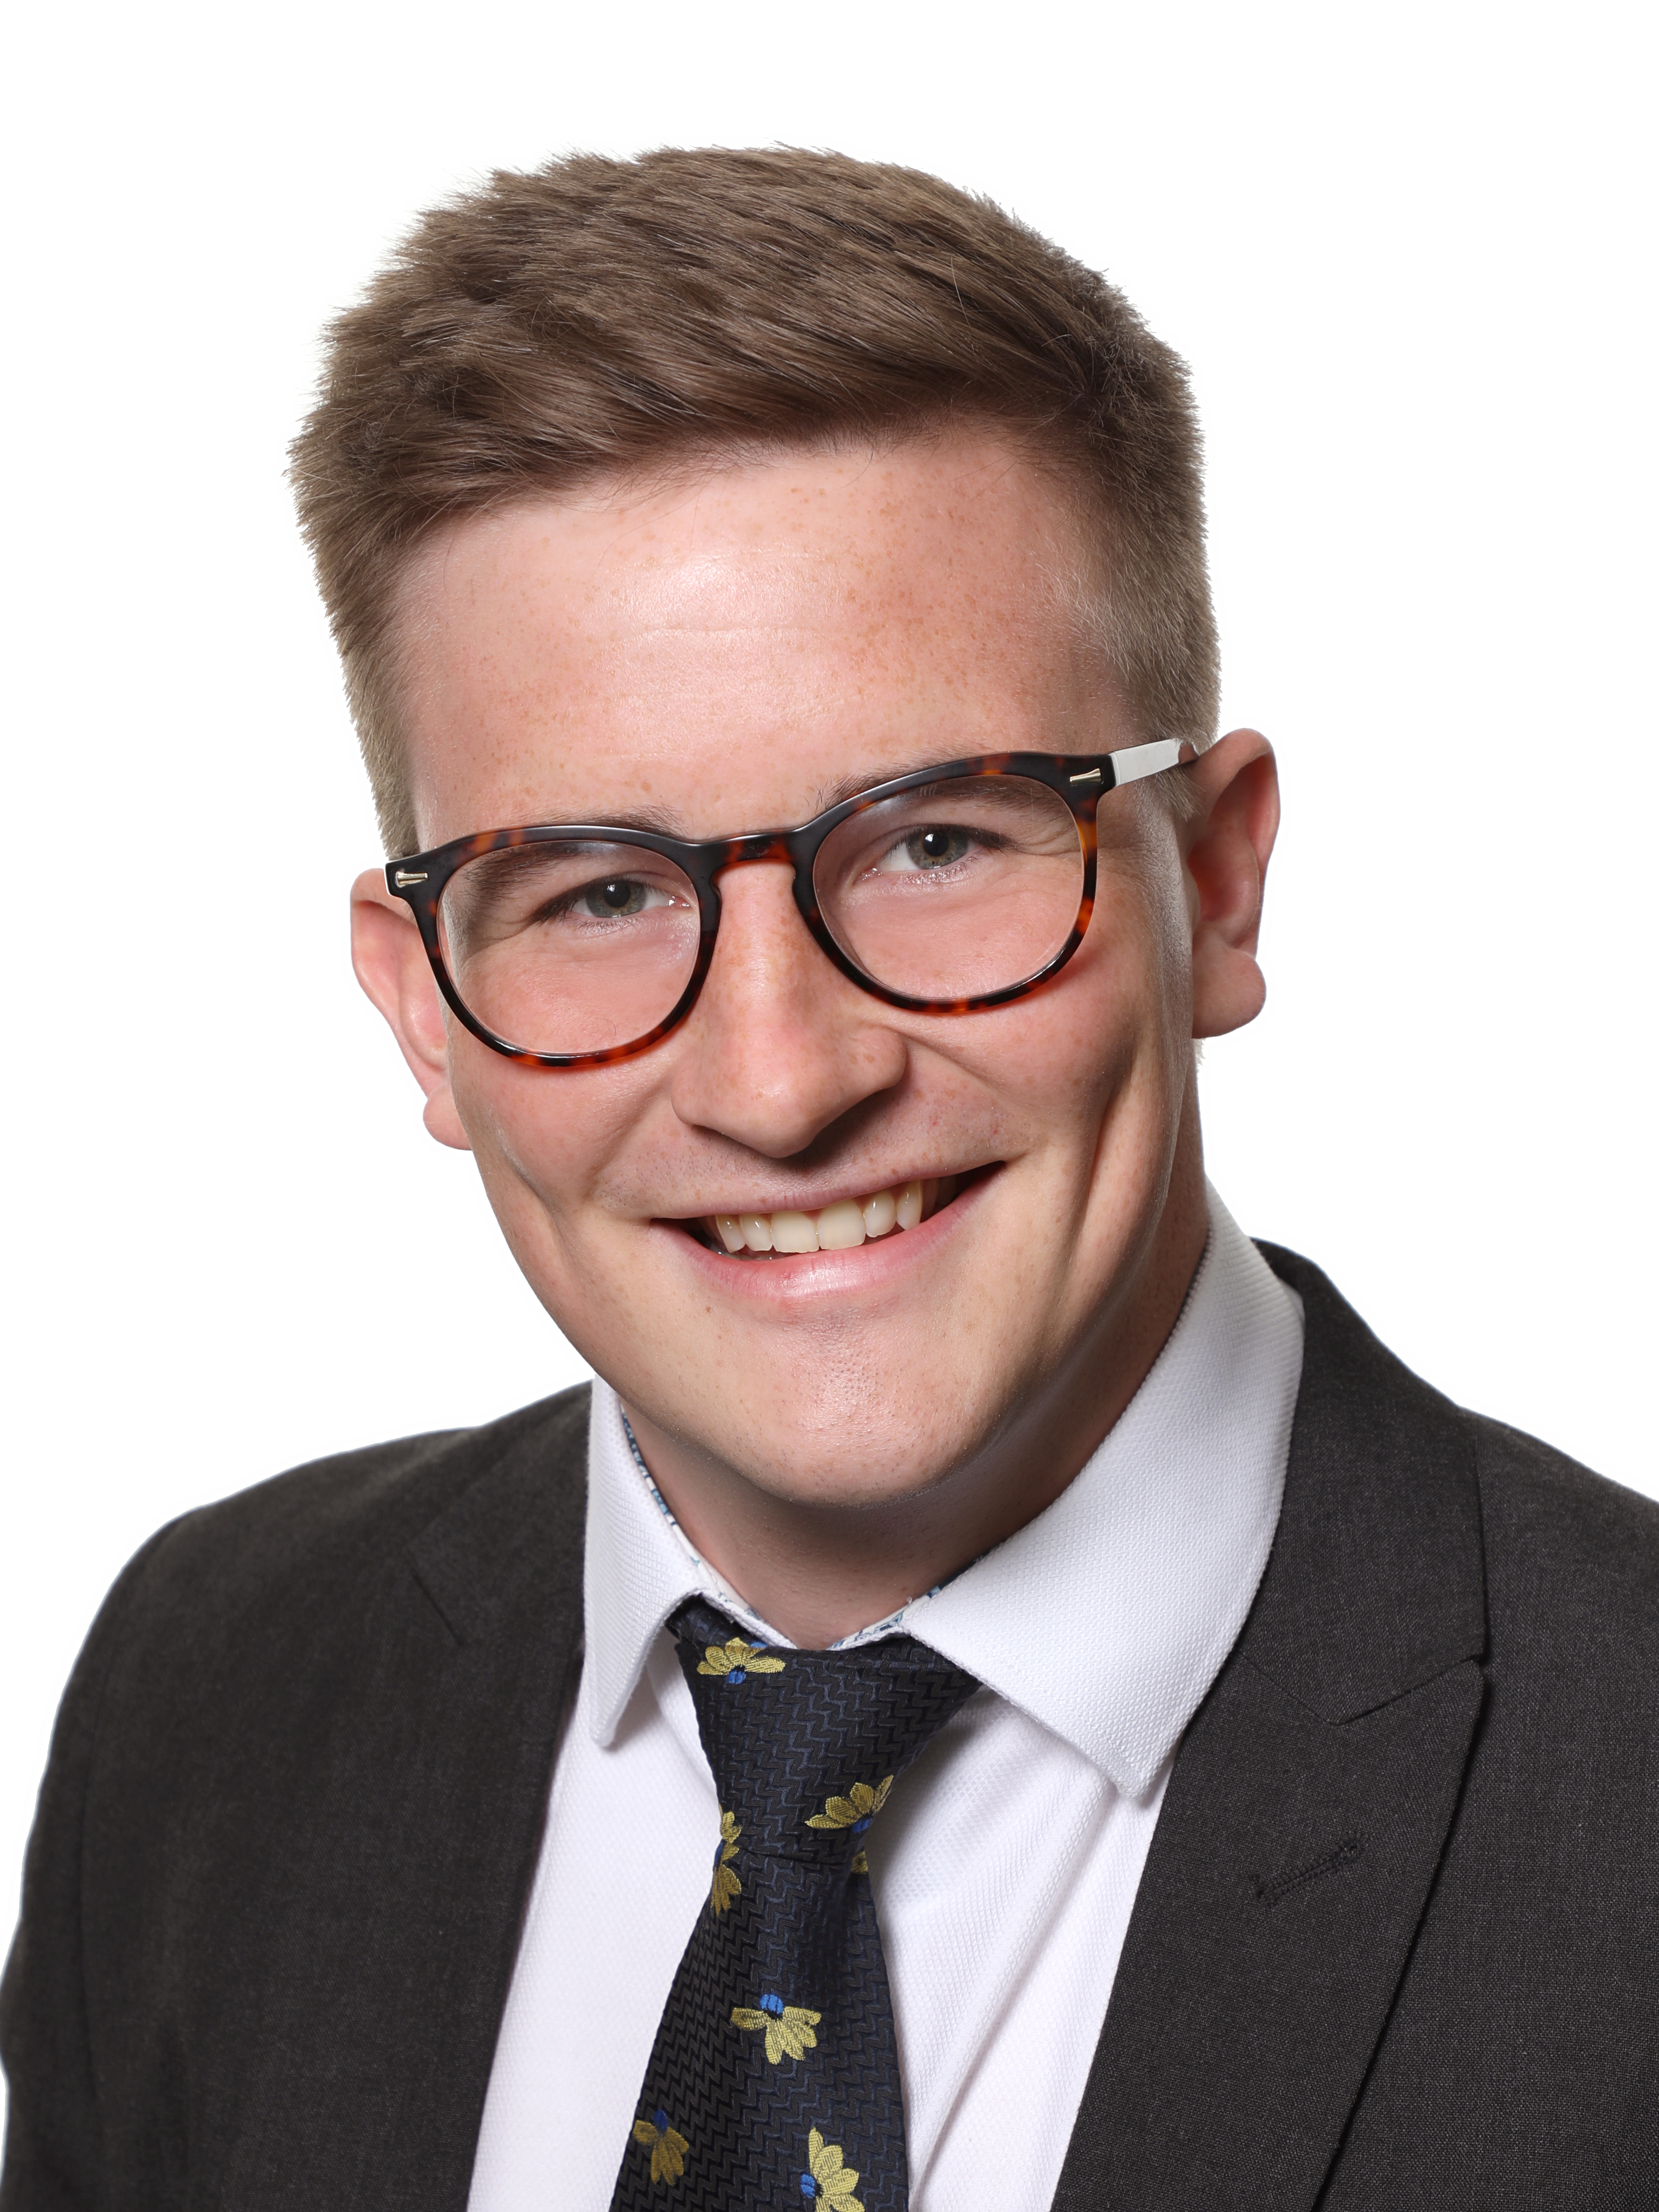 Jack Cundick, Costs Specialist